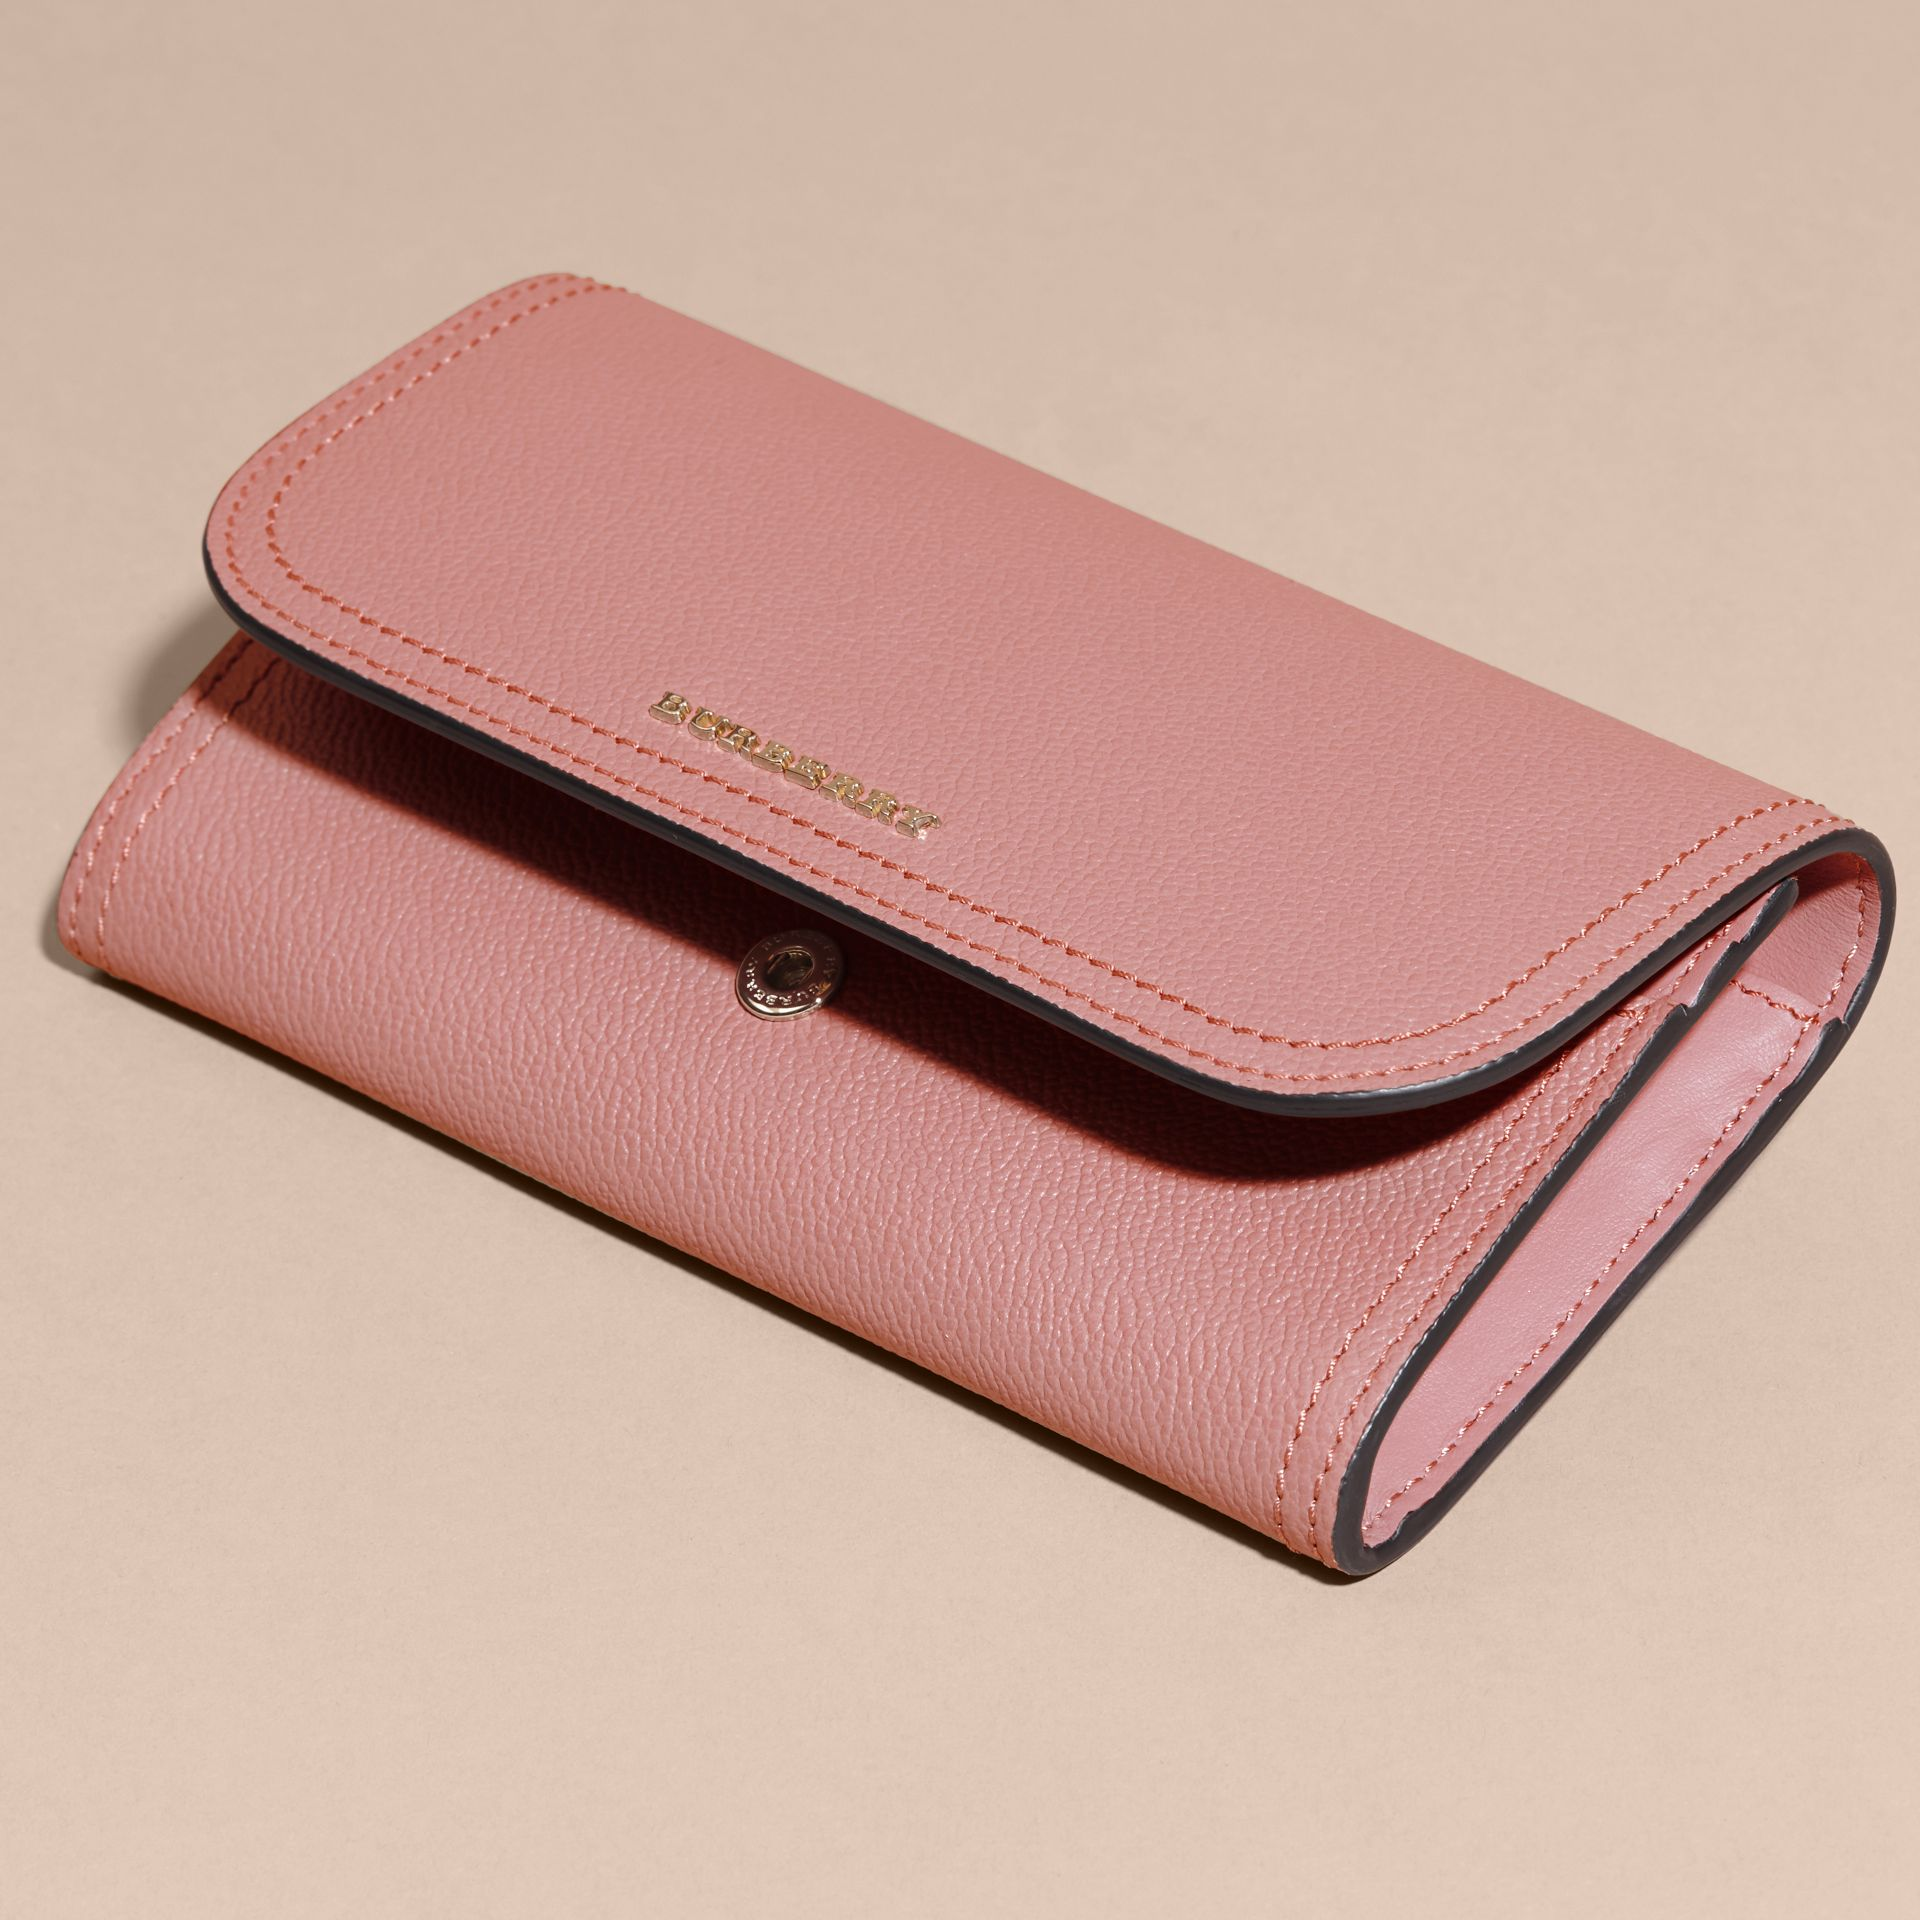 Grainy Leather Slim Continental Wallet in Dusty Pink - Women | Burberry - gallery image 4